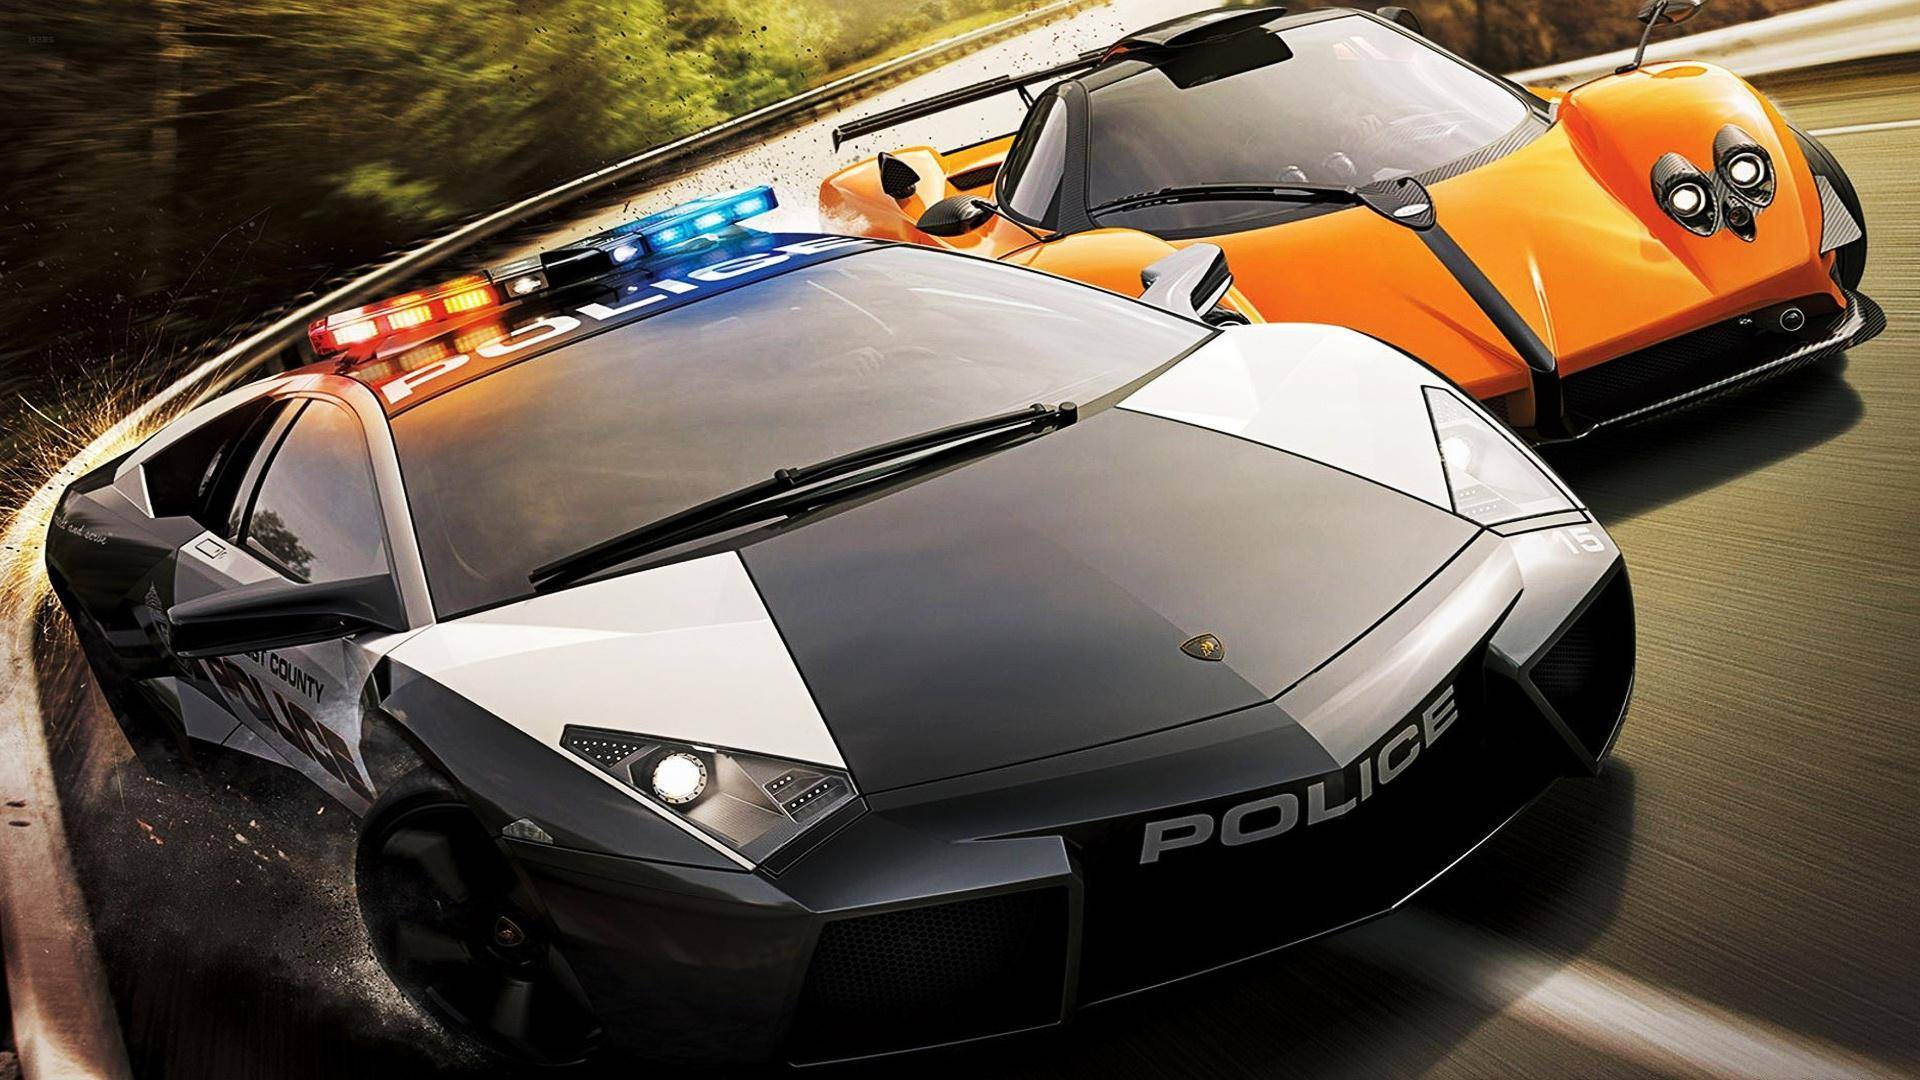 Buy Need For Speed Hot Pursuit Pc Cd Key For Steam Compare Prices